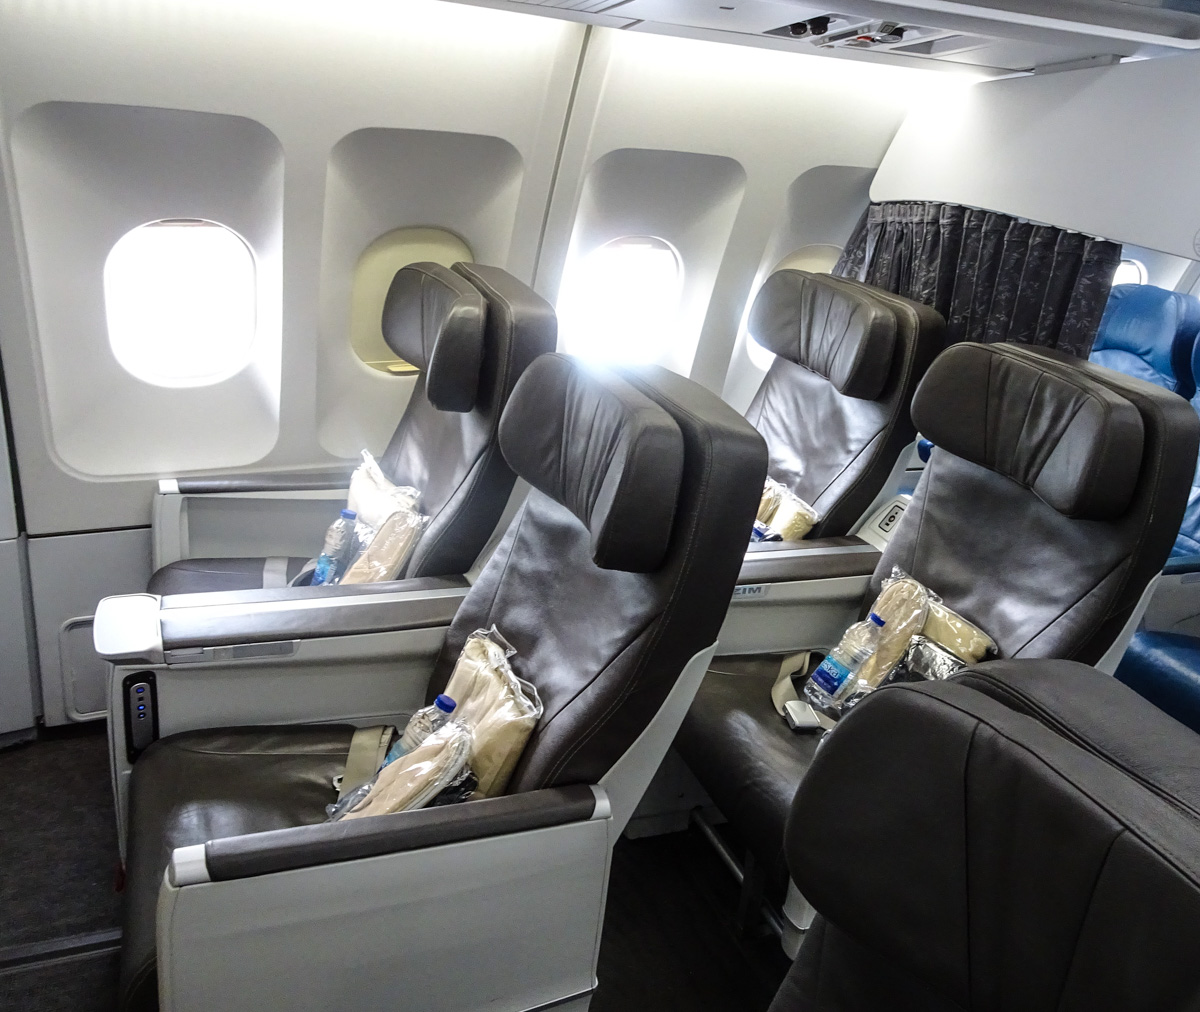 20 Air Transat Boeing 767 Interior Pictures And Ideas On Meta Networks